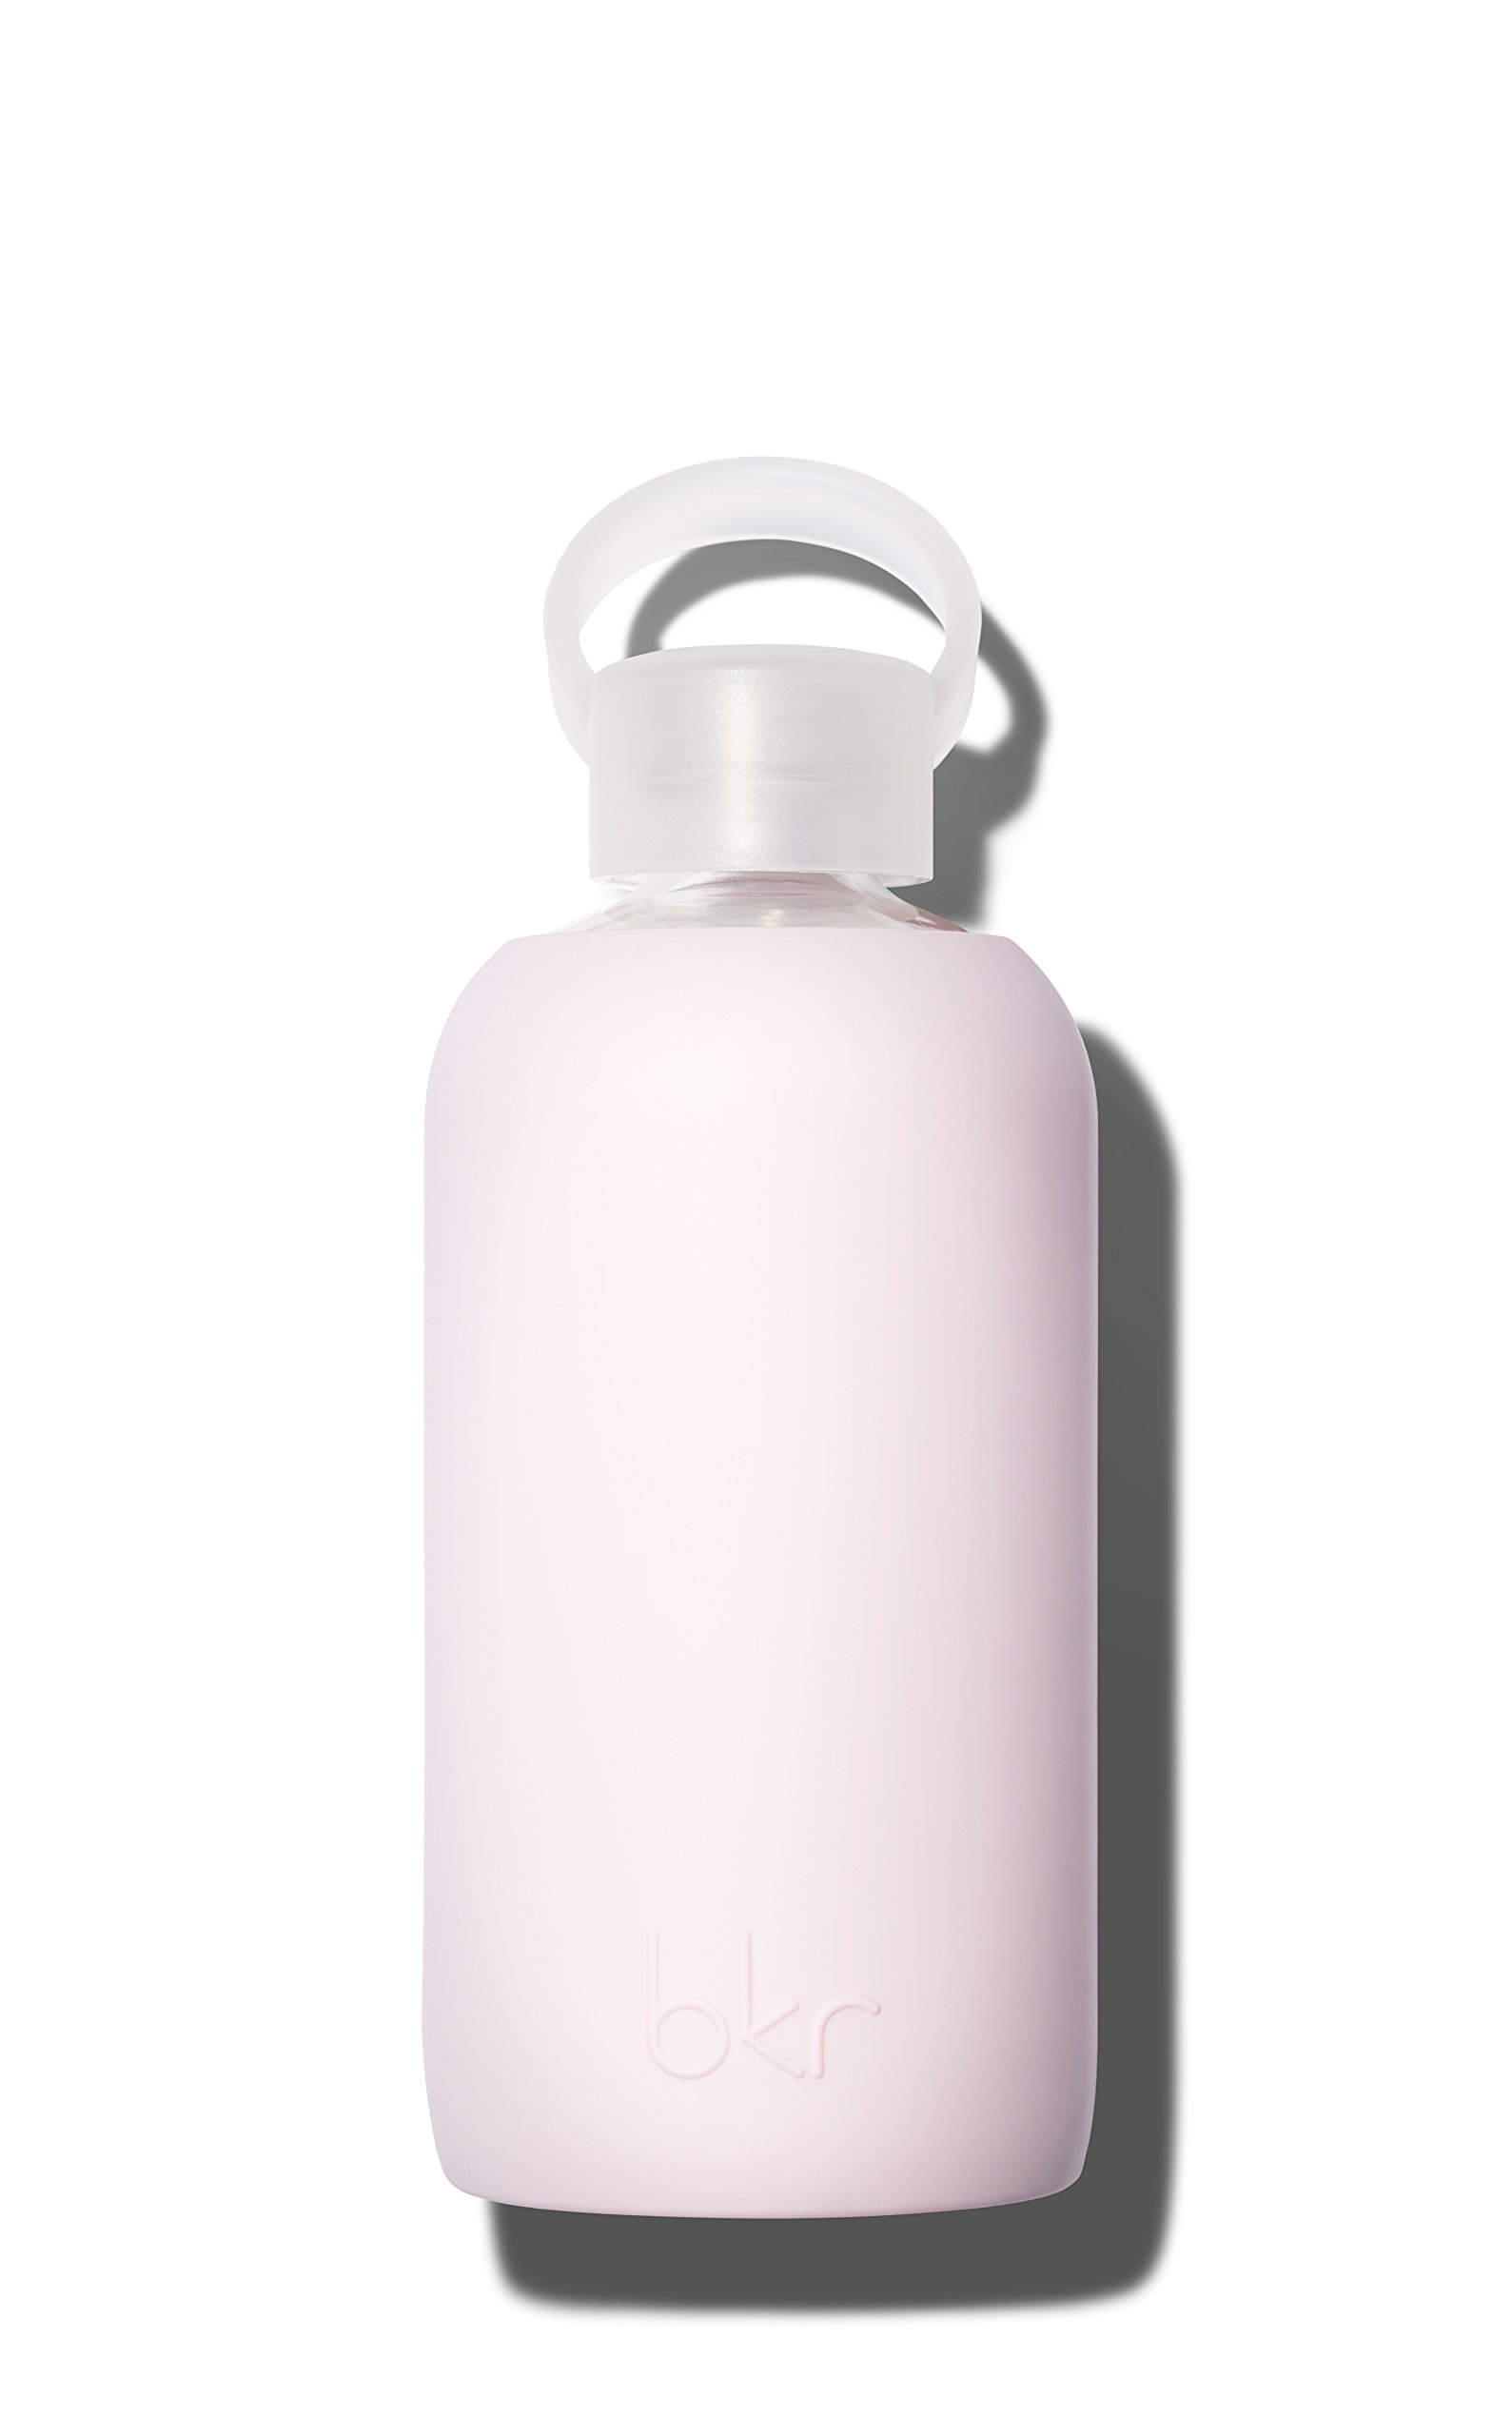 bkr Air Kiss Glass Water Bottle with Smooth Silicone Sleeve for Travel, Narrow Mouth, BPA-Free & Dishwasher Safe, Opaque Socialite Sweetheart Pink, 16 Ounce by bkr (Image #1)